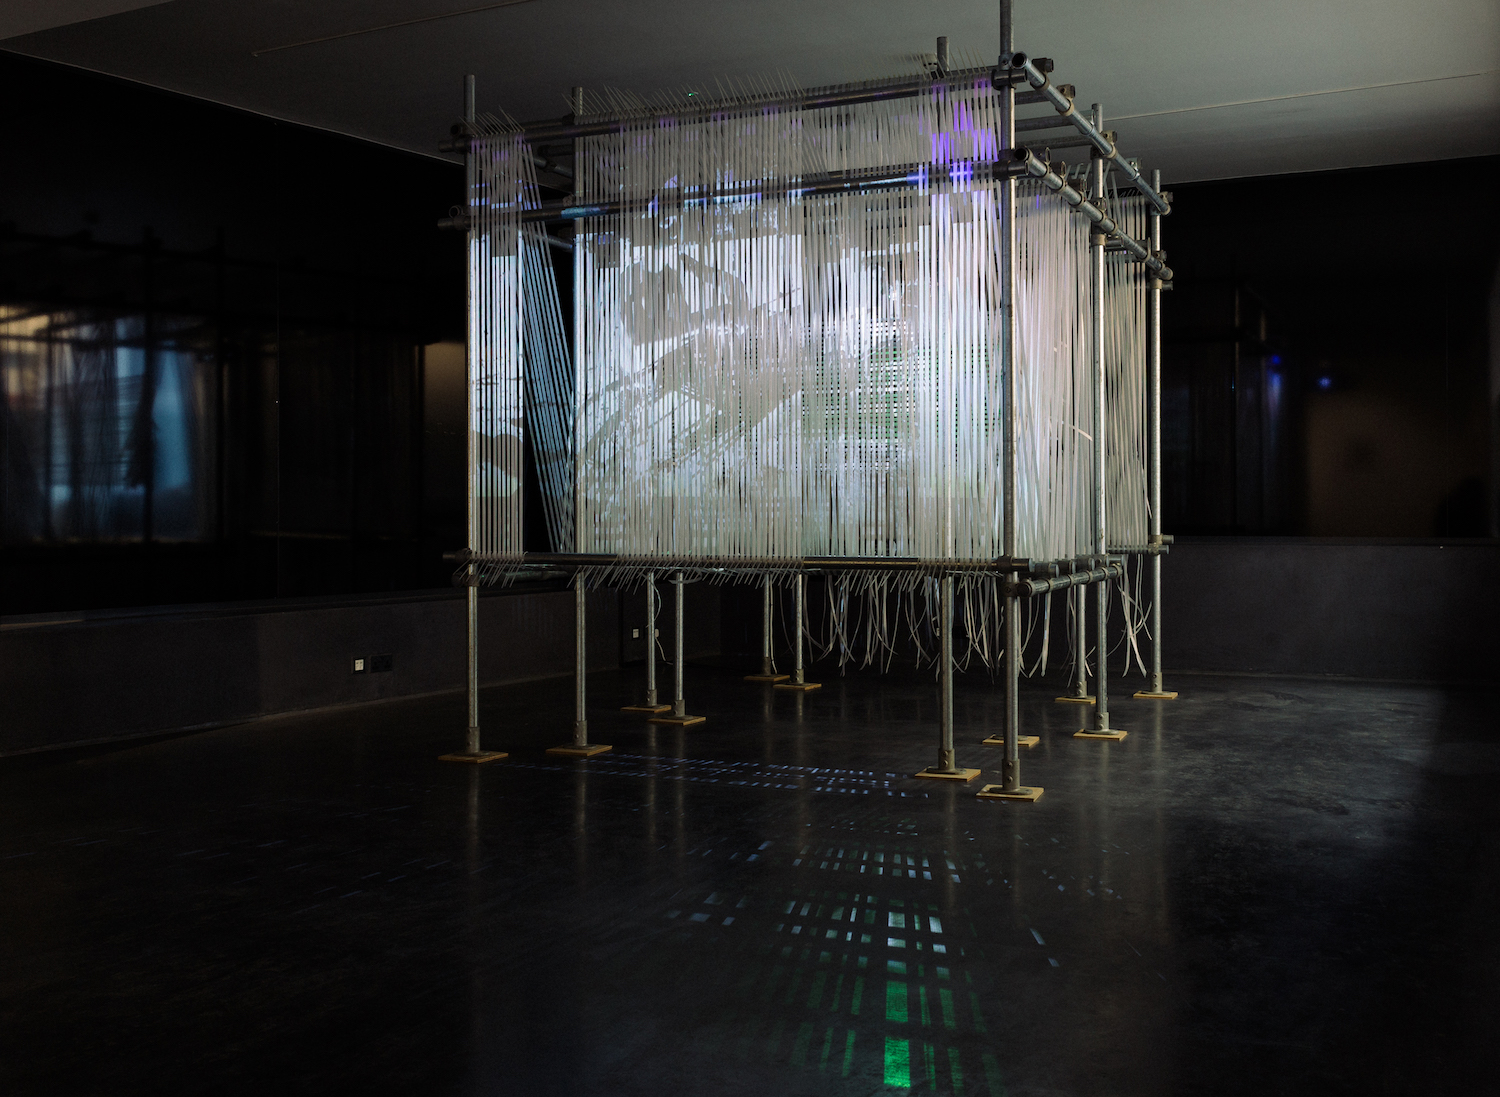 Erika Tan, 'The 'Forgotten' Weaver', 2017-2019, 2-channel video projection, strapping screen and metal support structure, 275cm x 302cm. Image courtesy of Wei-Ling Contemporary.